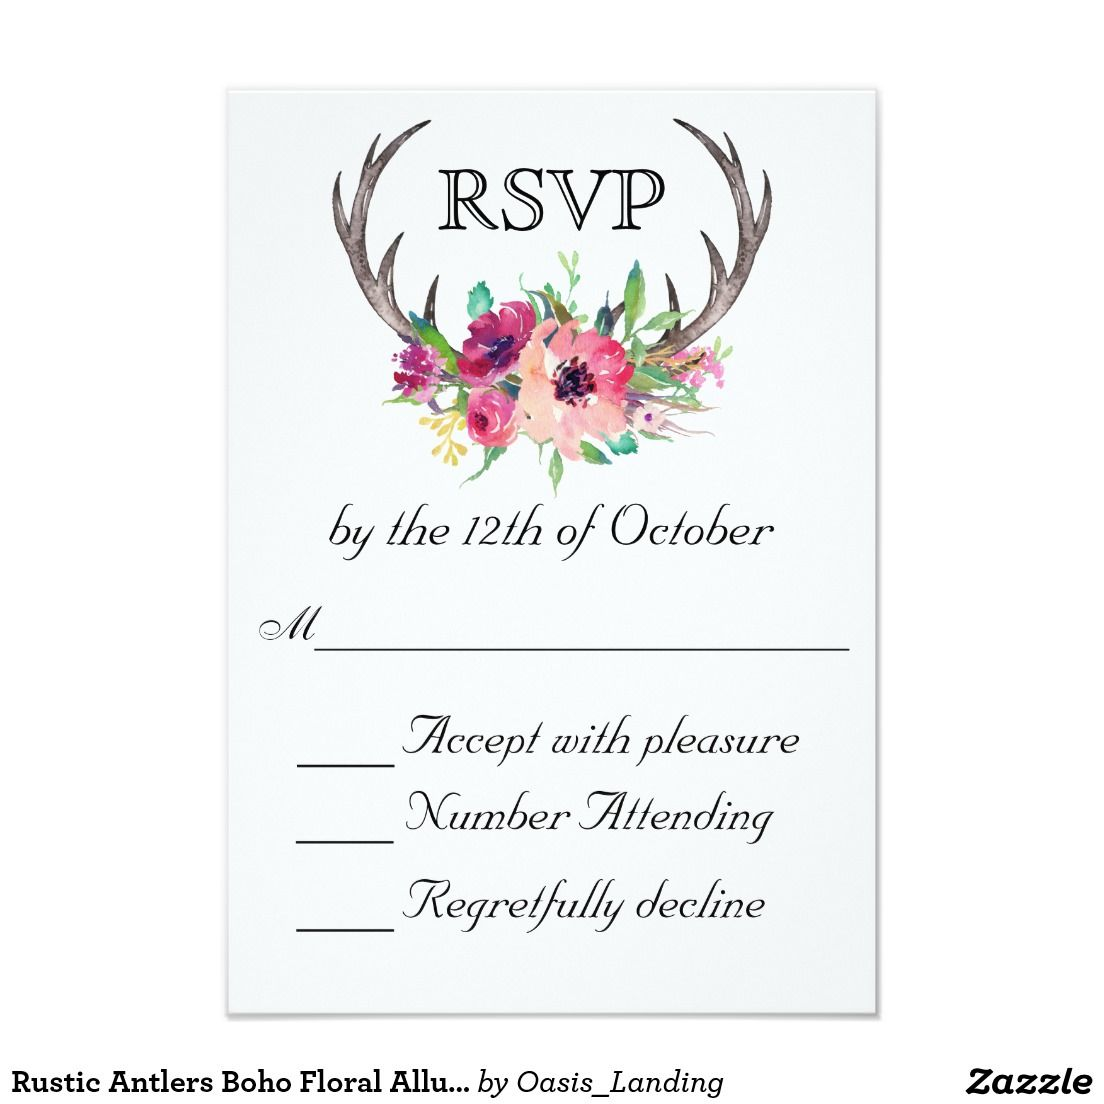 Rustic Antlers Boho Floral Allure Wedding Card - With enchanting rustic boho style, this wedding RSVP Card design features deer horns beautifully embellished with watercolor florals in rich purple and pink hues. Include your required RSVP response date in place of the sample text shown. Sold at Oasis_Landing on Zazzle.